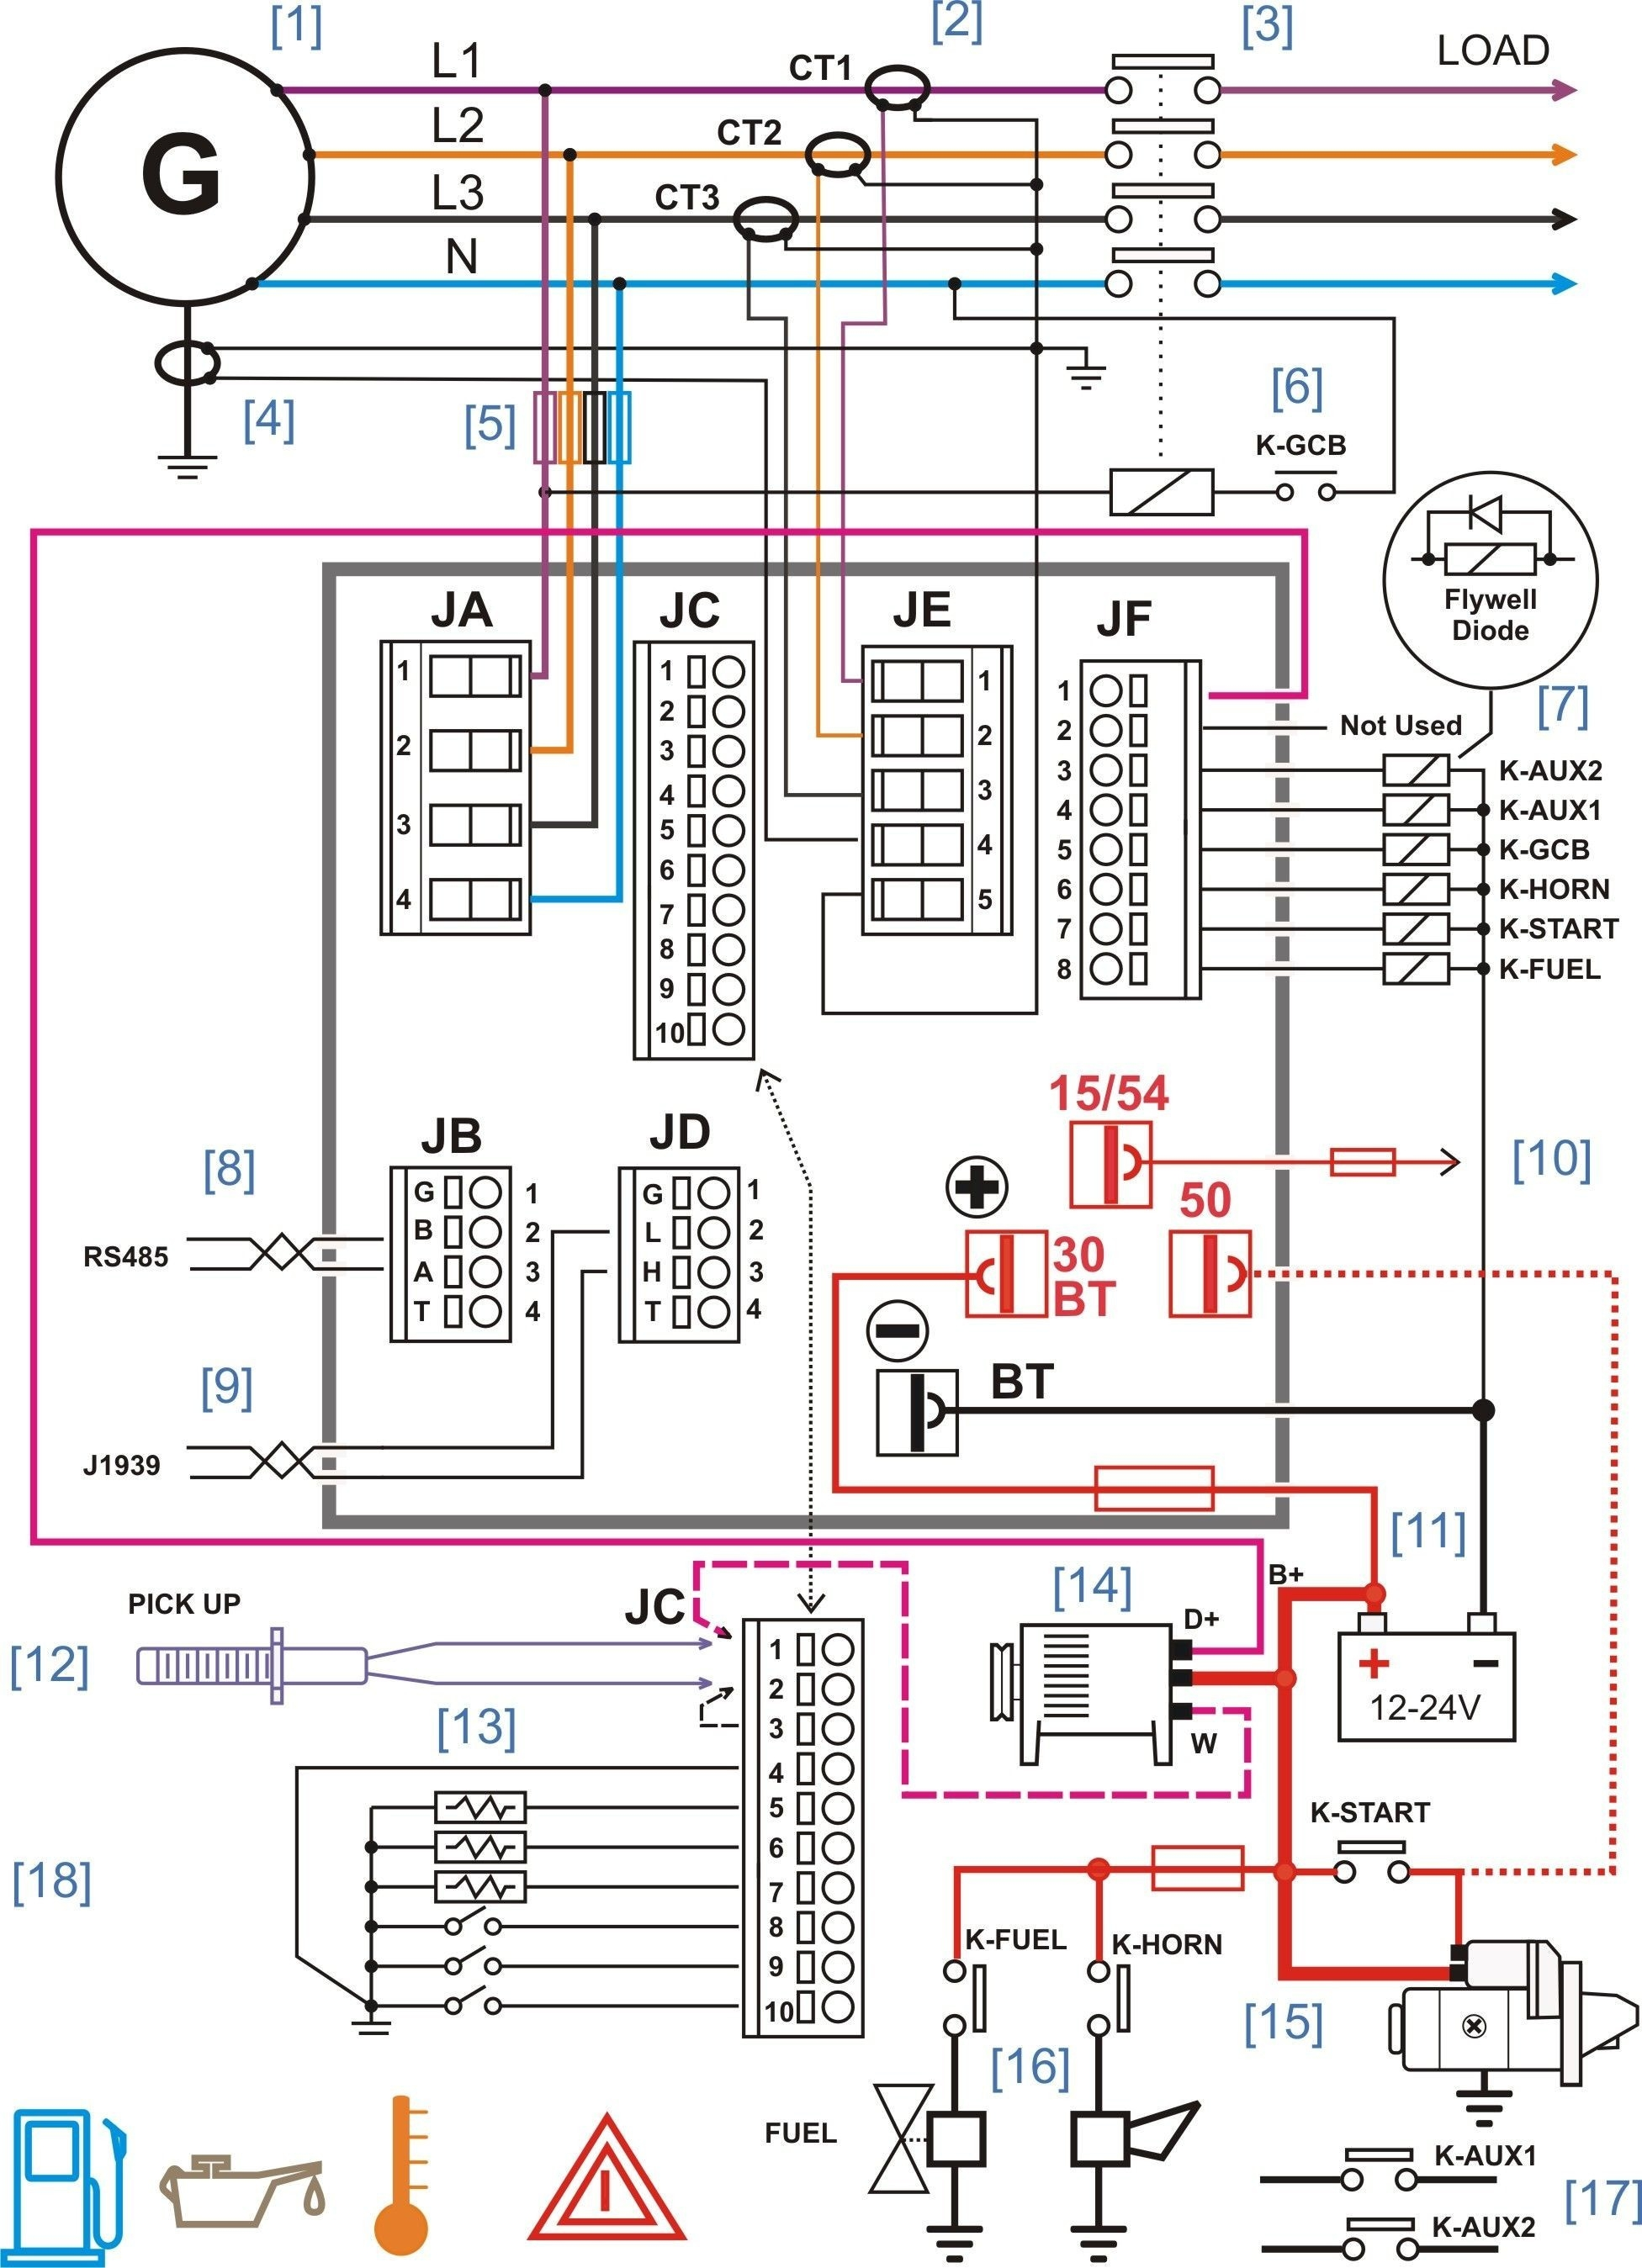 wiring diagram generac nexus smart switch wiring diagrams konsult  nexus smart switch wiring wiring diagrams tar wiring diagram generac nexus smart switch